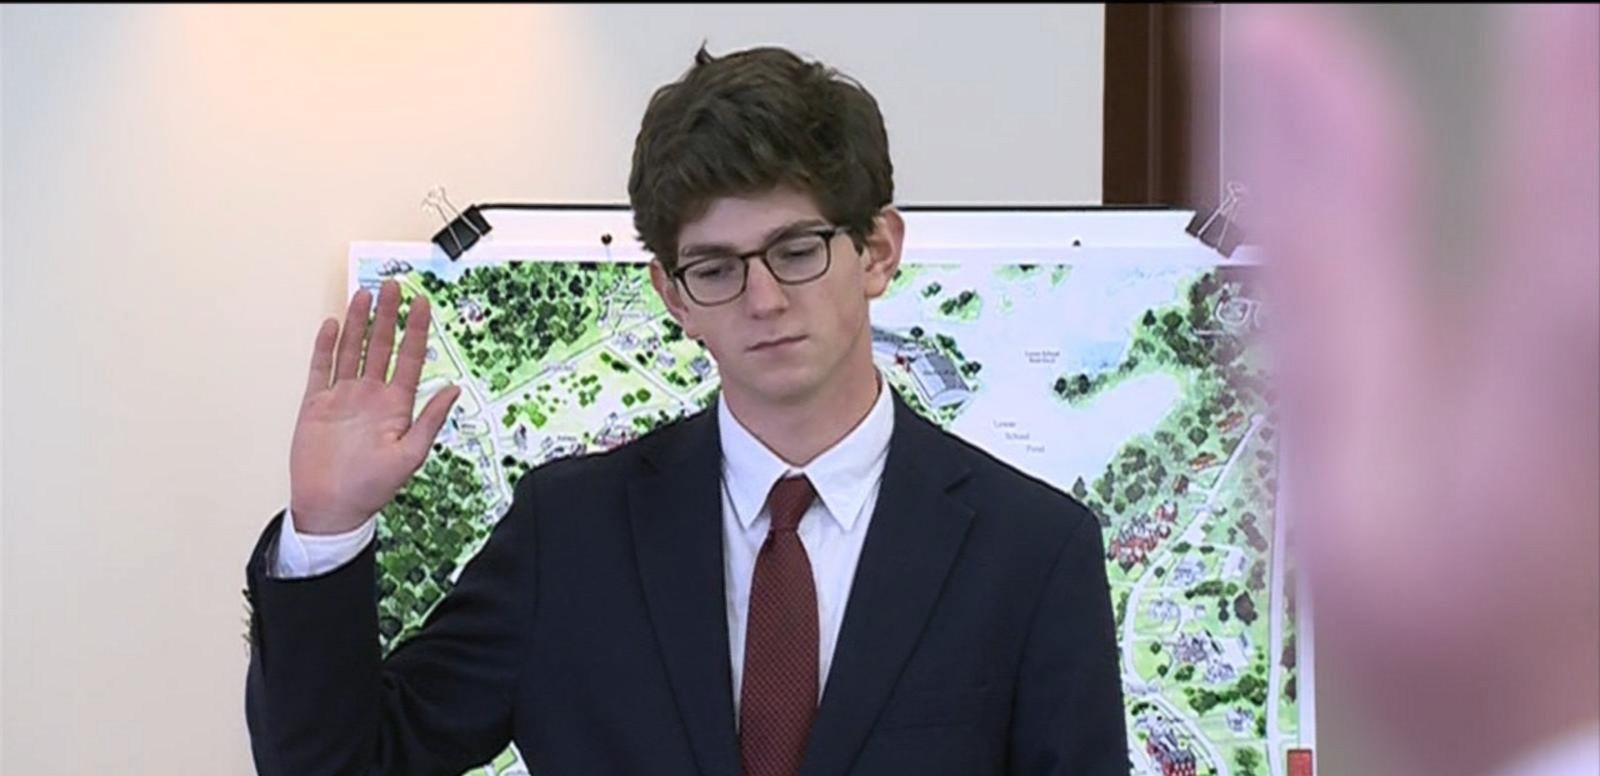 VIDEO: Owen Labrie's Lawyers Could Appeal Sexual Assault Verdict